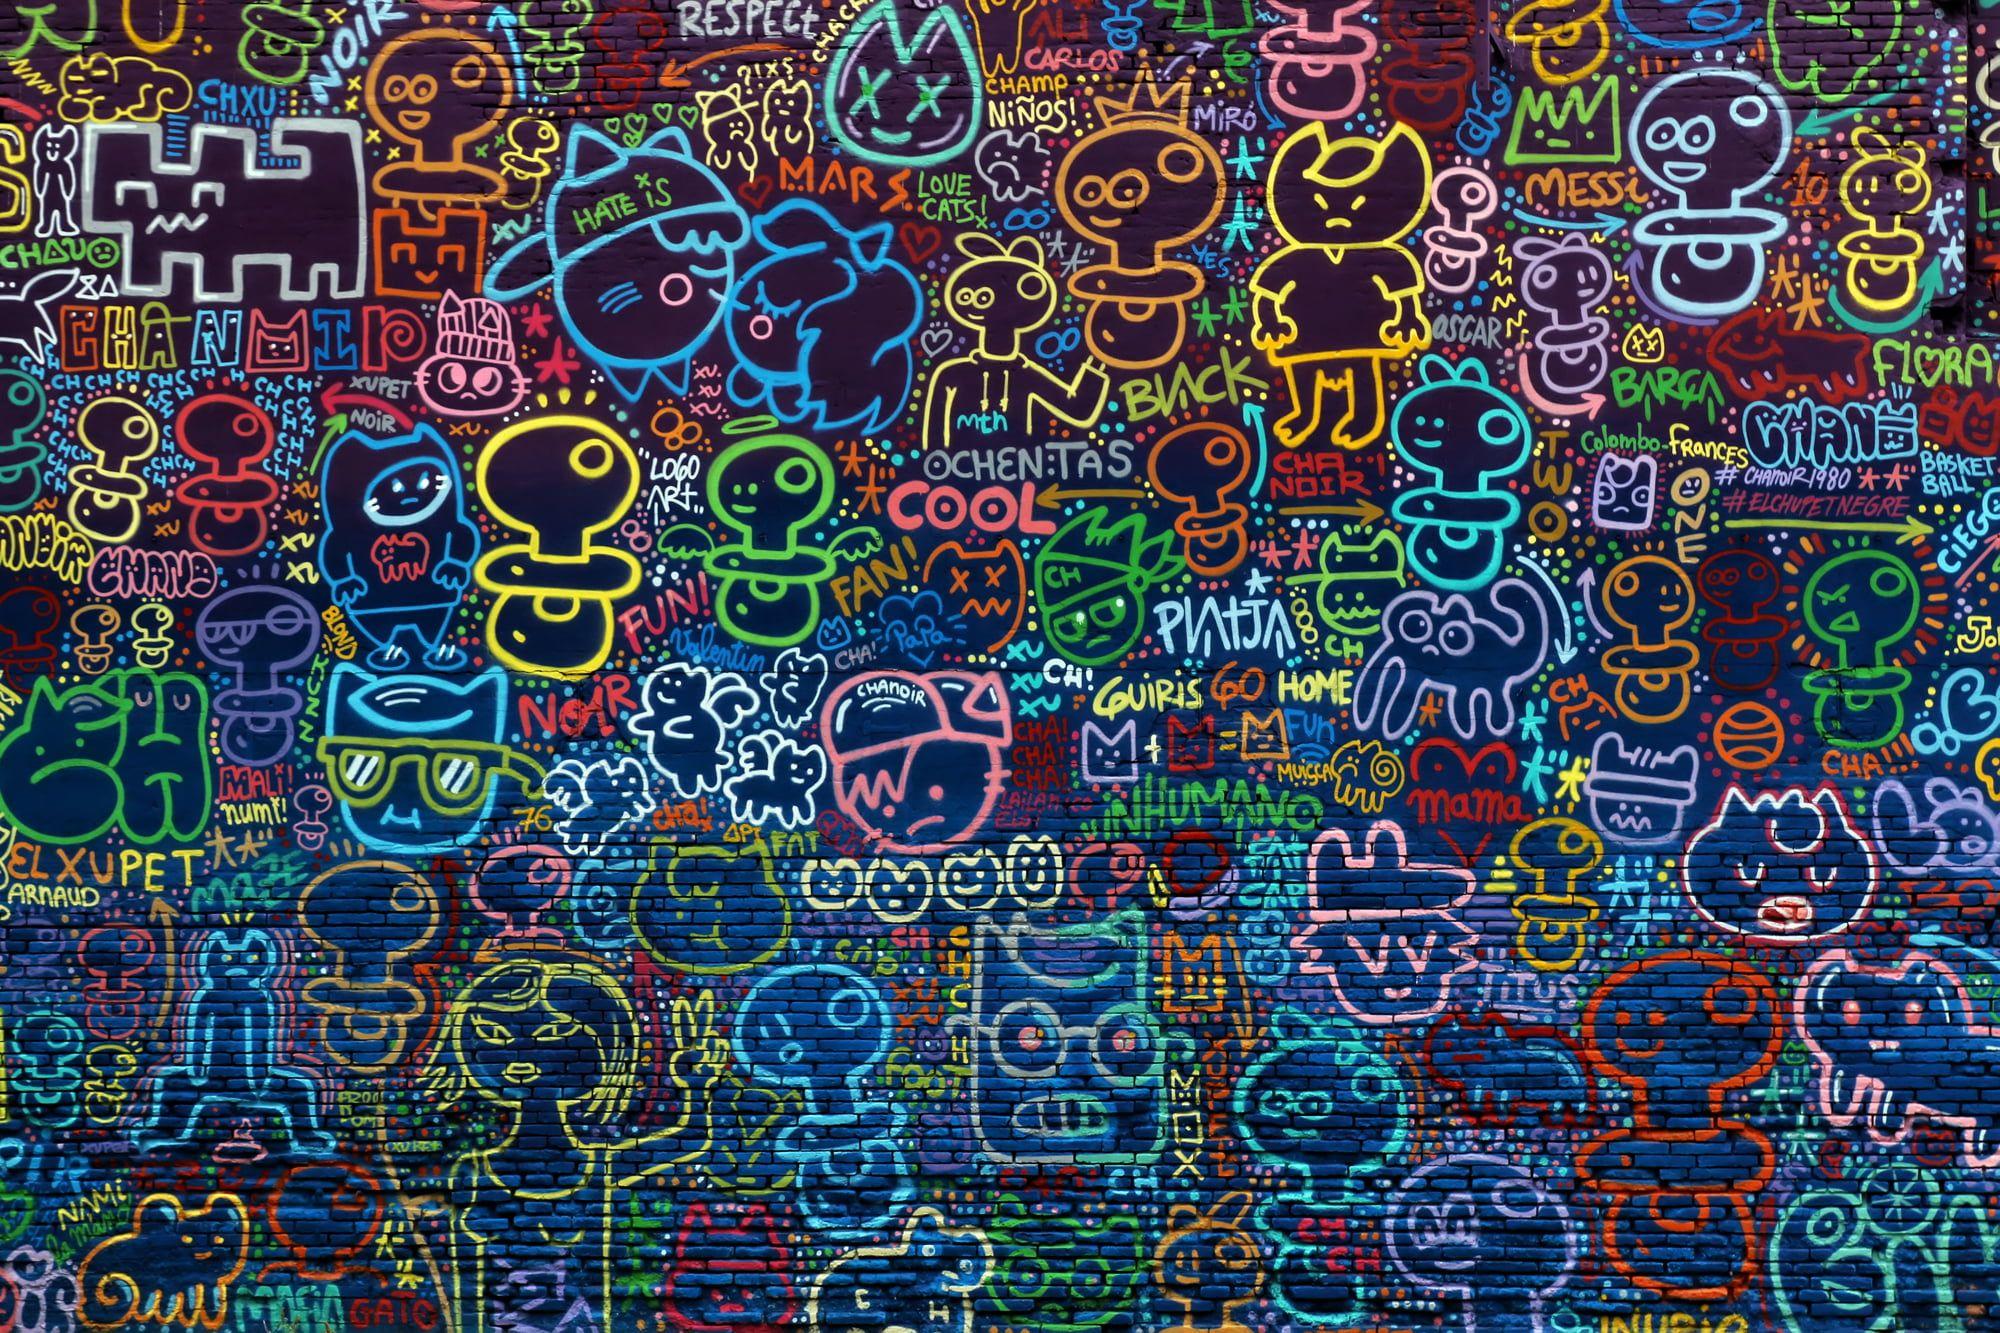 Multicolored Doodle Art Background Wall Drawings 1080p Wallpaper Hdwallpaper Desktop Doodle Art Wall Drawings Lion Artwork